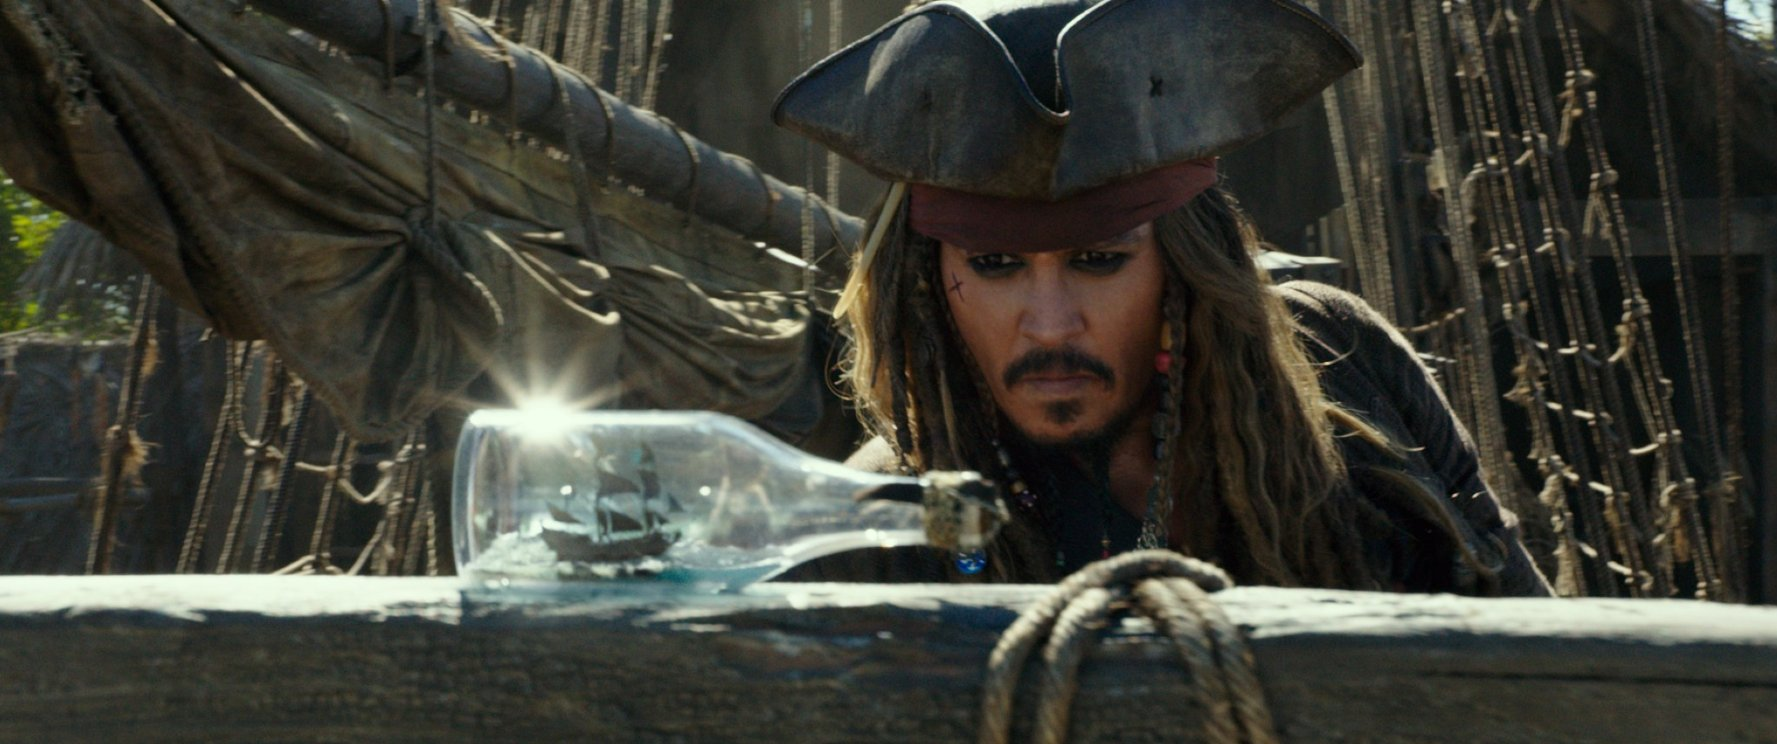 May Movie Preview: 'Pirates of the Caribbean: Dead Men Tell No Tales'